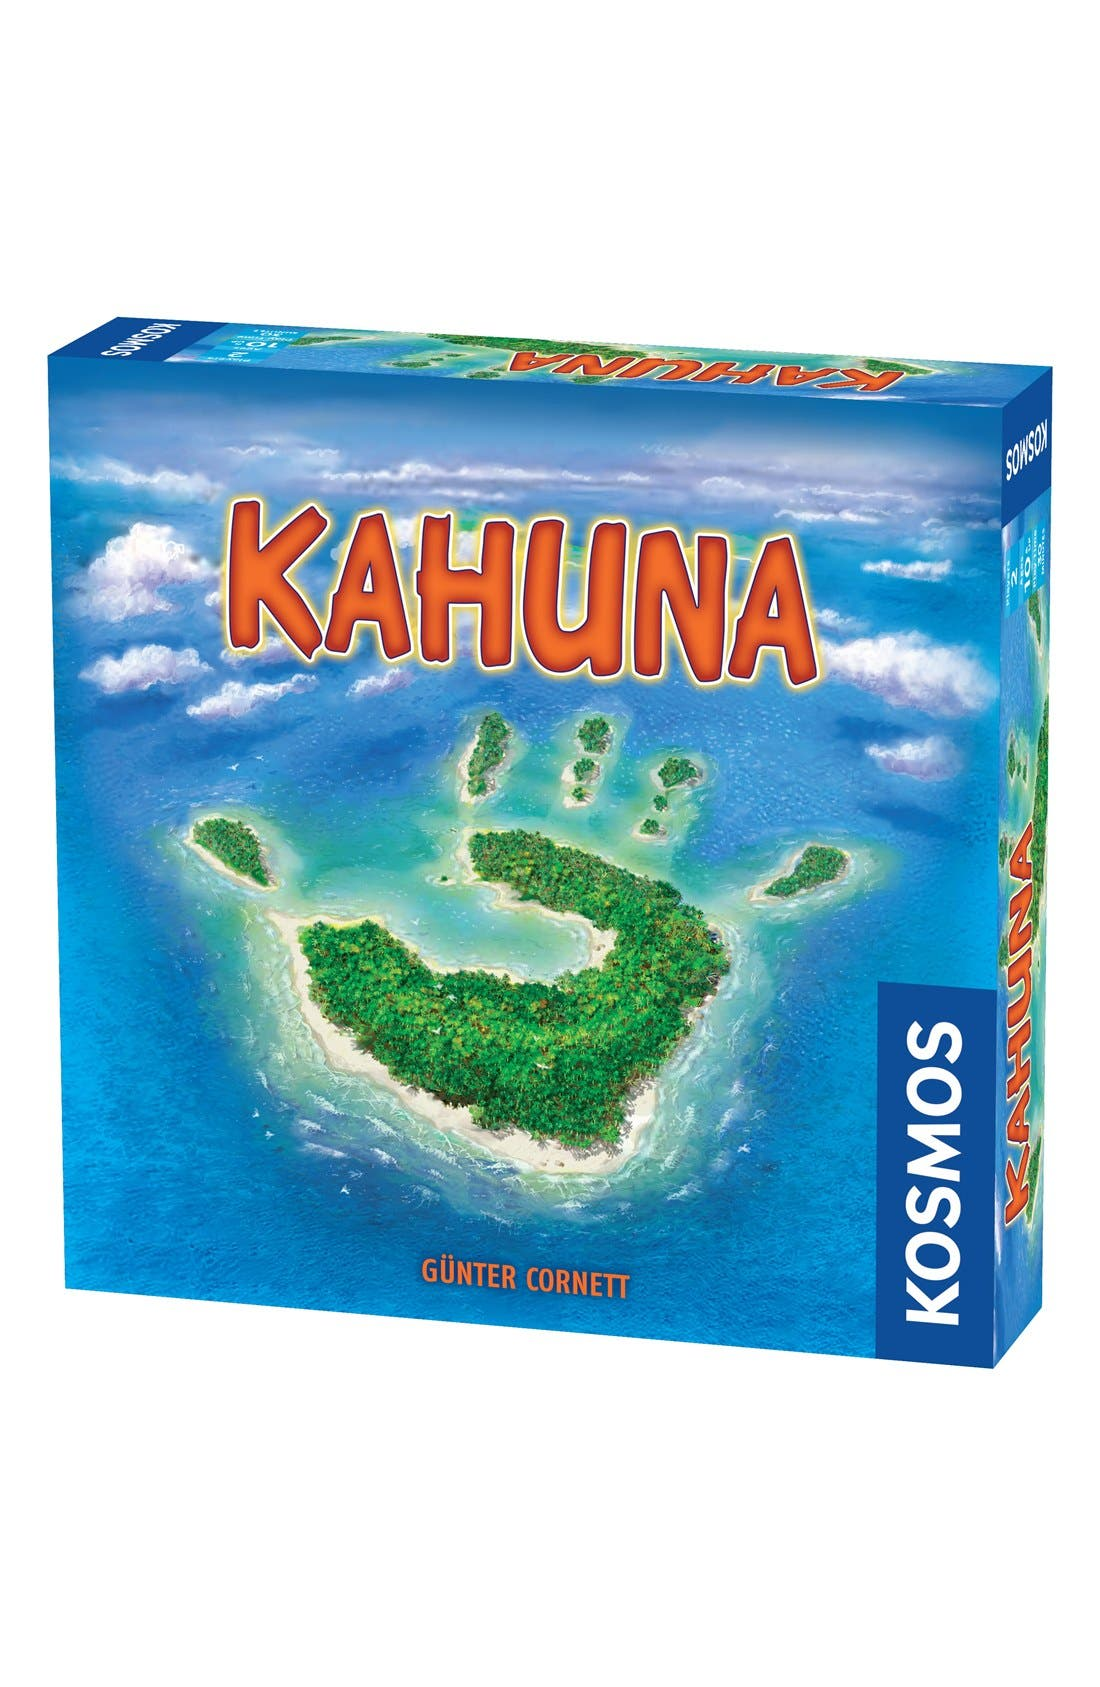 Thames & Kosmos 'Kahuna' Two-Player Board Game